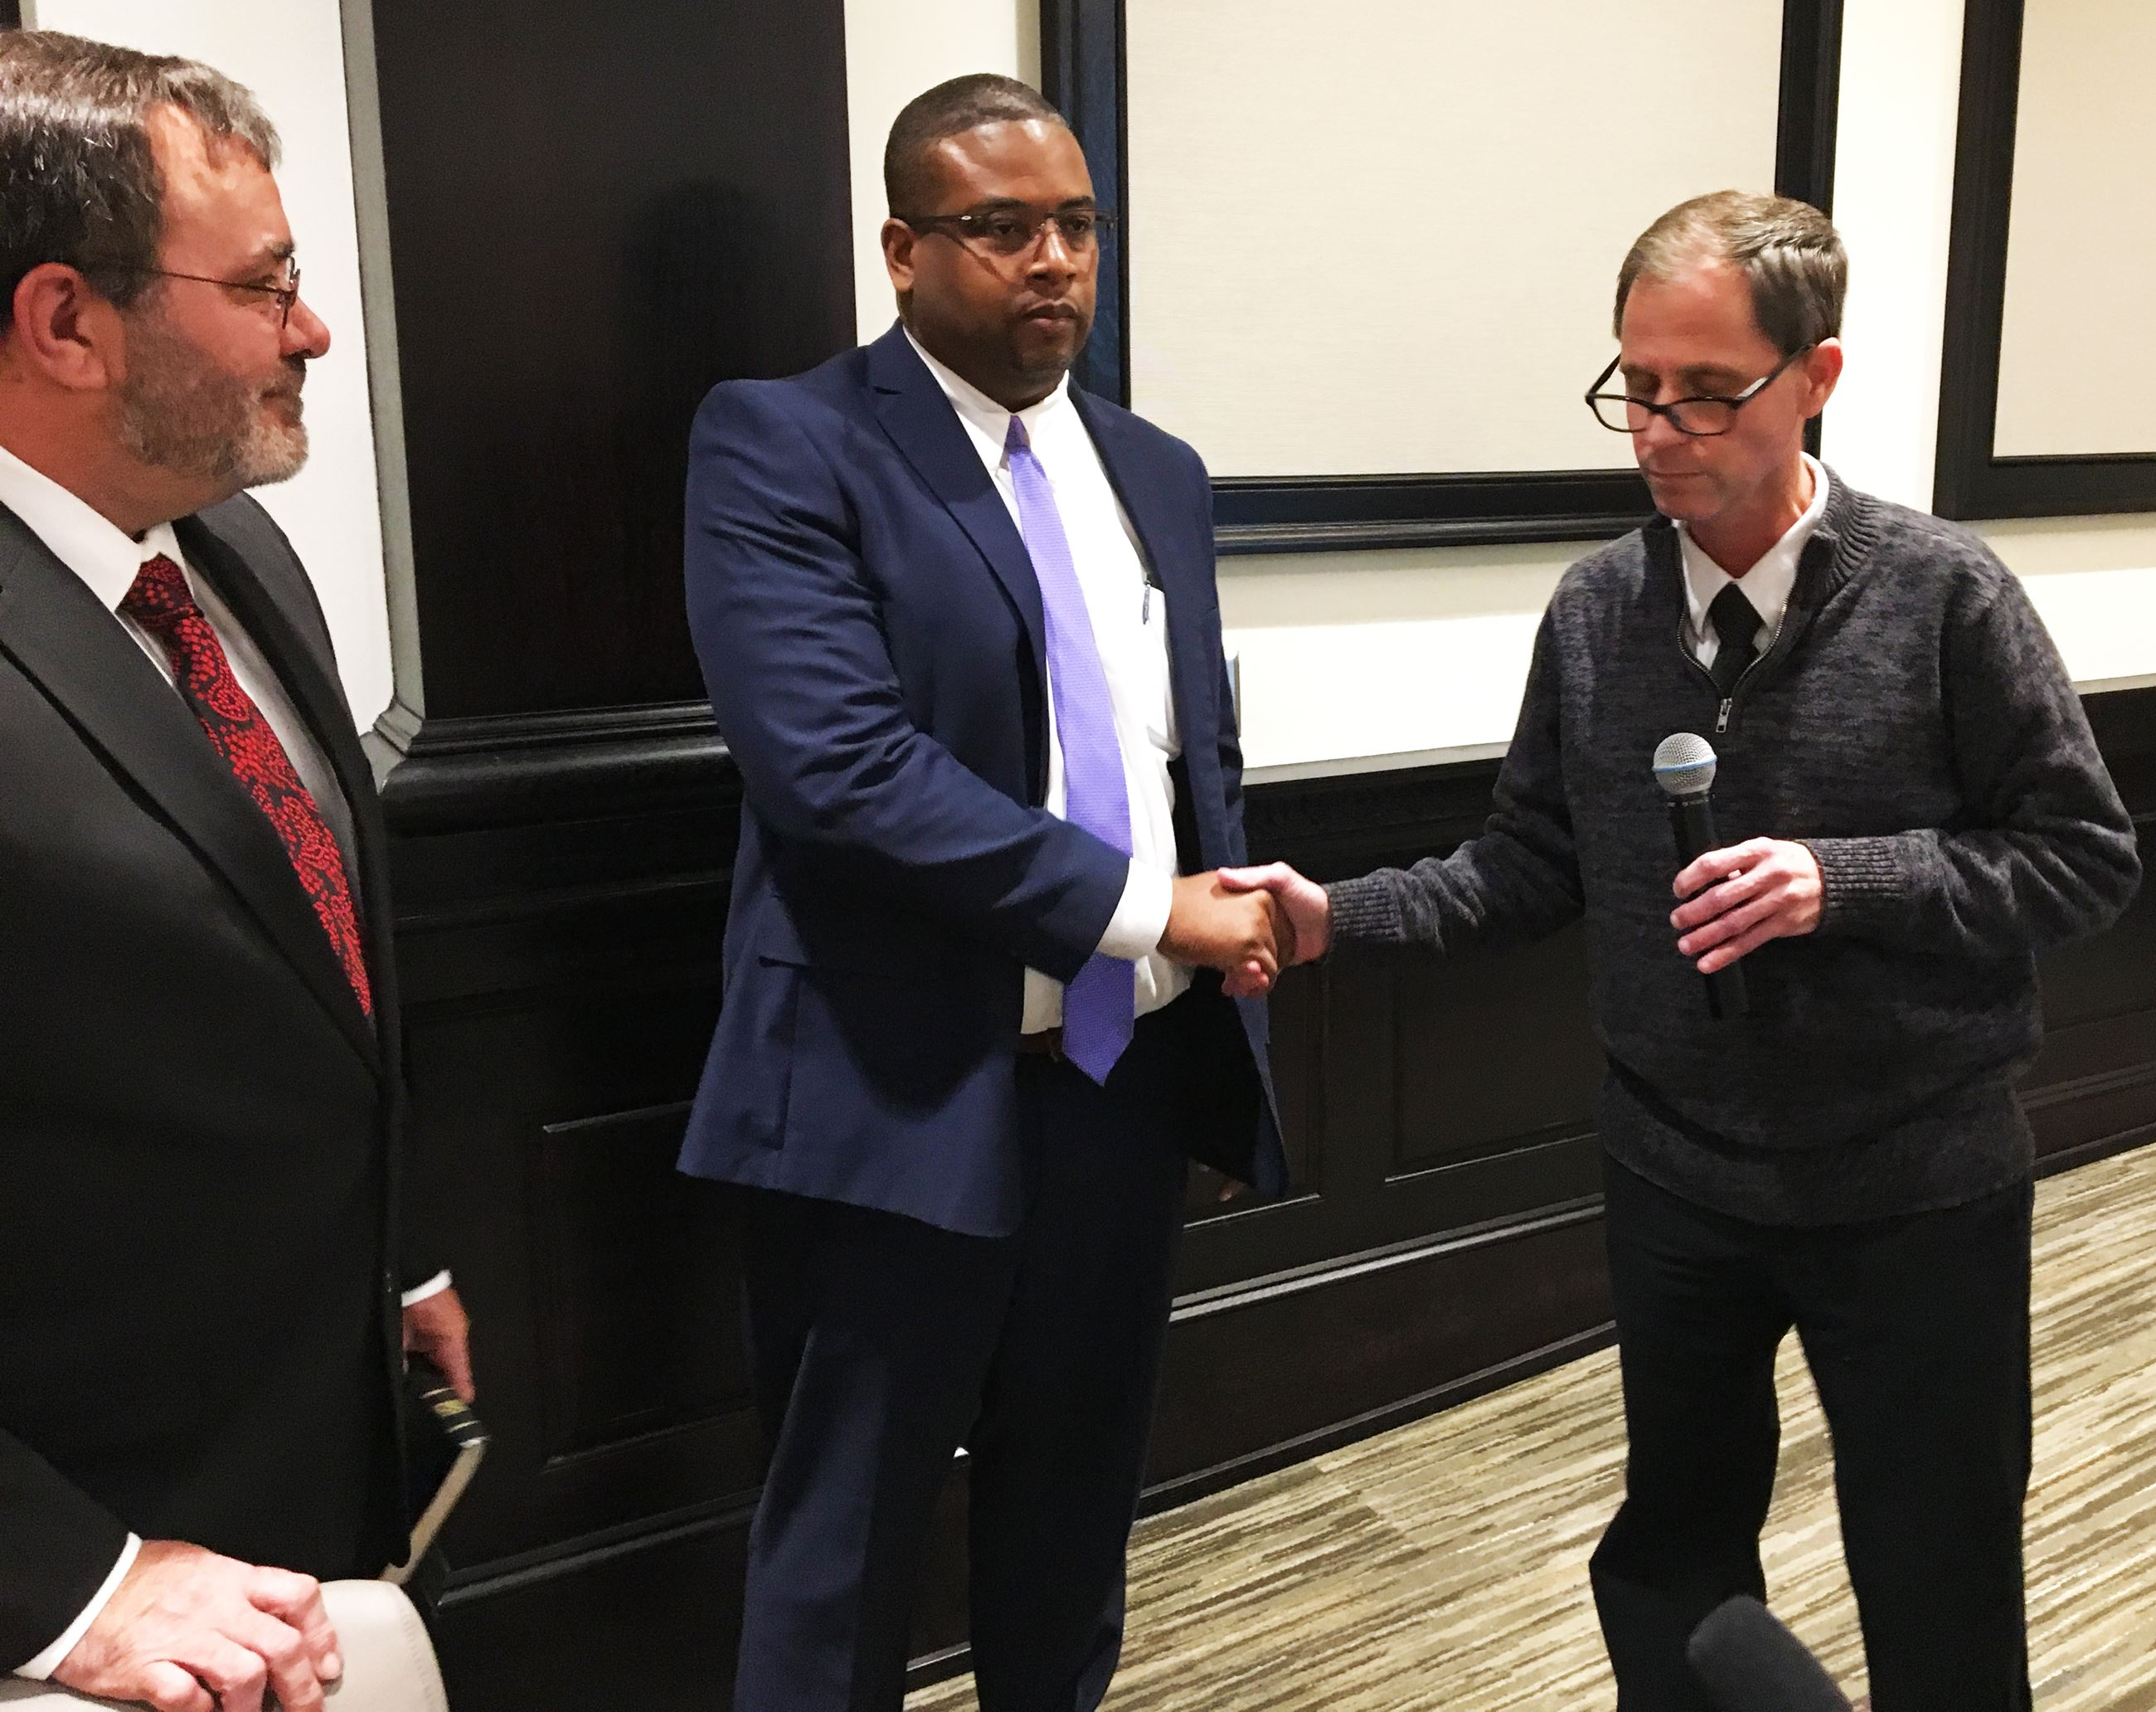 Marcus McIntyre (center) is sworn in with the help of Mayor Michael Alvarez (right) and Councilman J